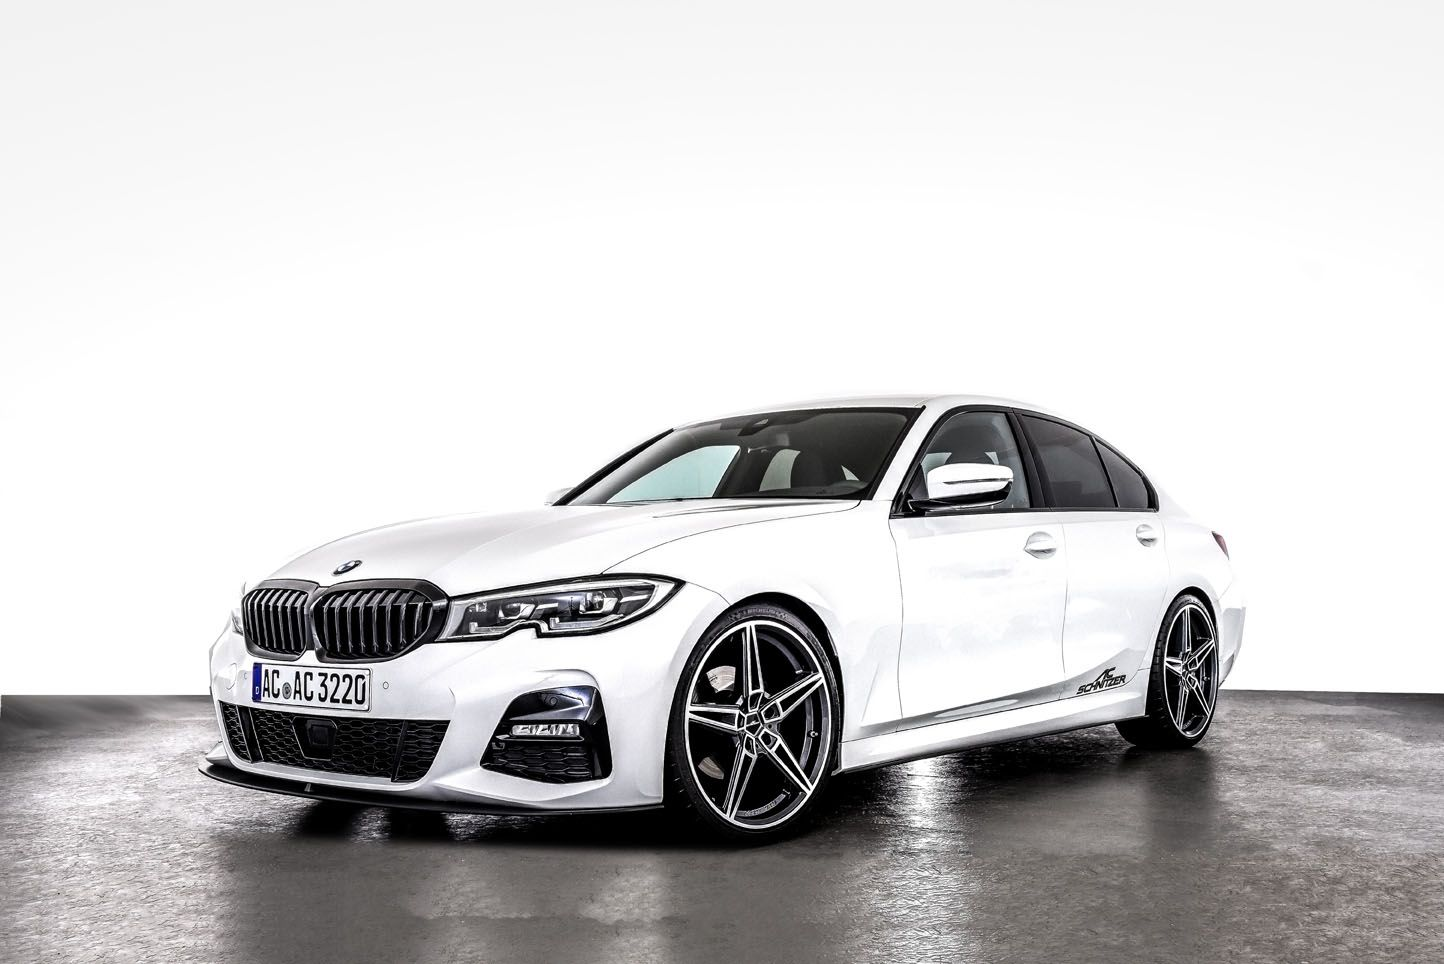 Ac Schnitzer Unveils Some Of Their Parts For The New Bmw 3 Series Bmw New Bmw New Bmw 3 Series